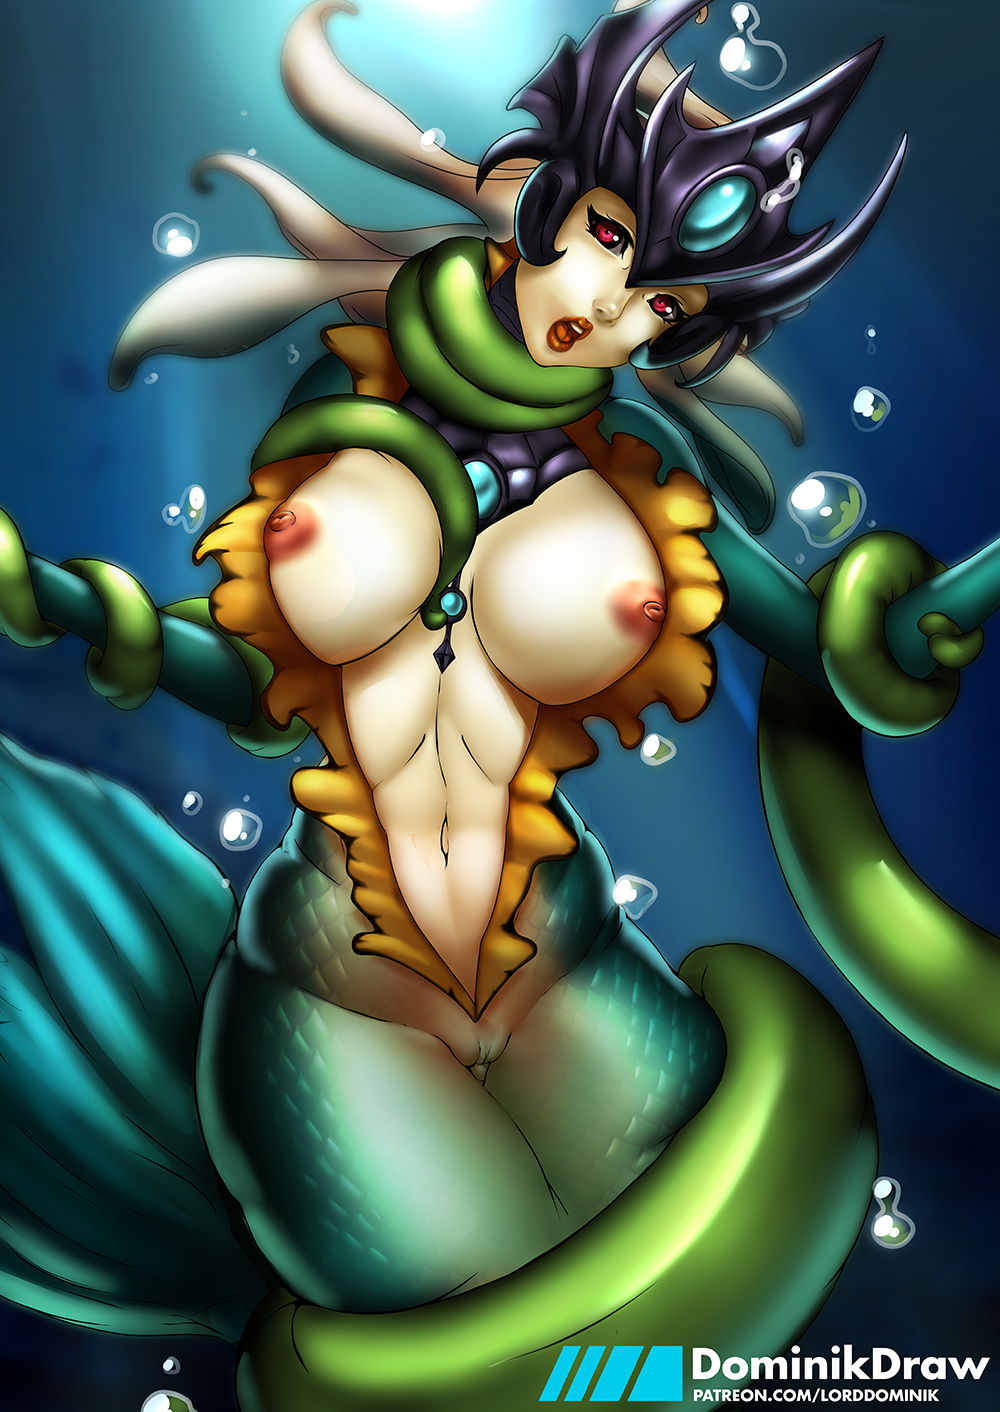 2751355 - League_of_Legends Lord_Dominik Nami